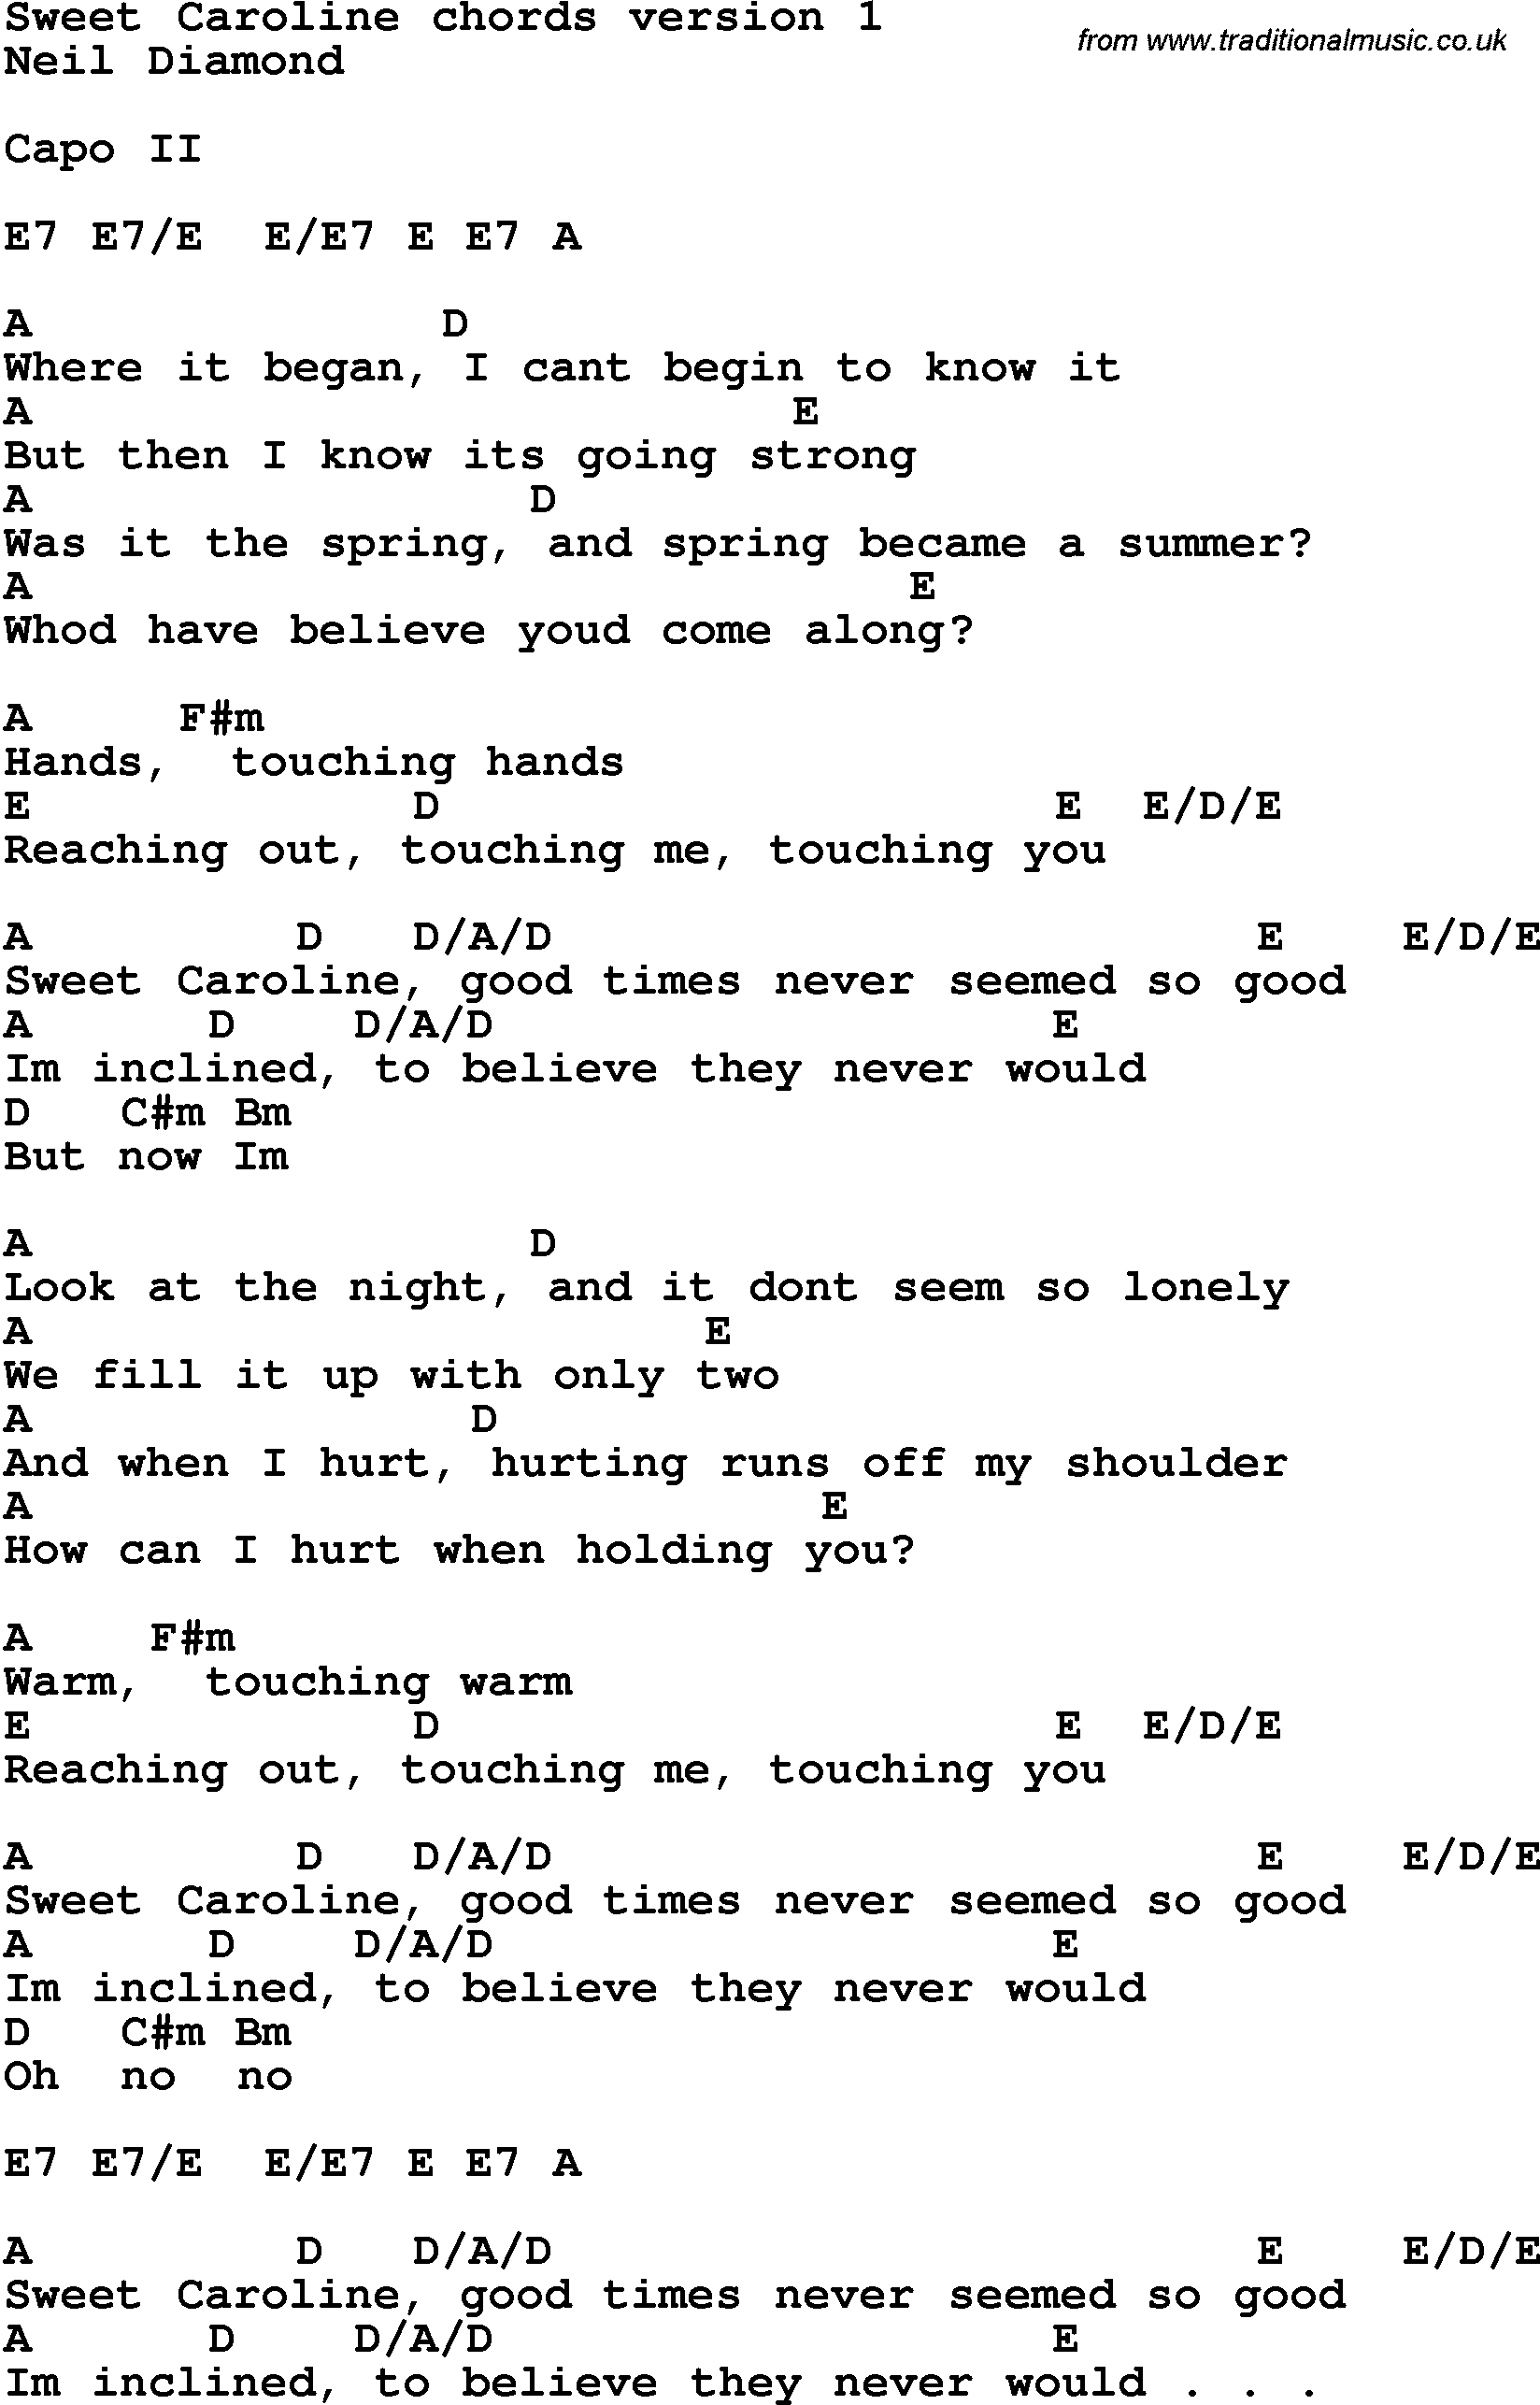 Sweet Caroline Chords Song Lyrics With Guitar Chords For Sweet Caroline